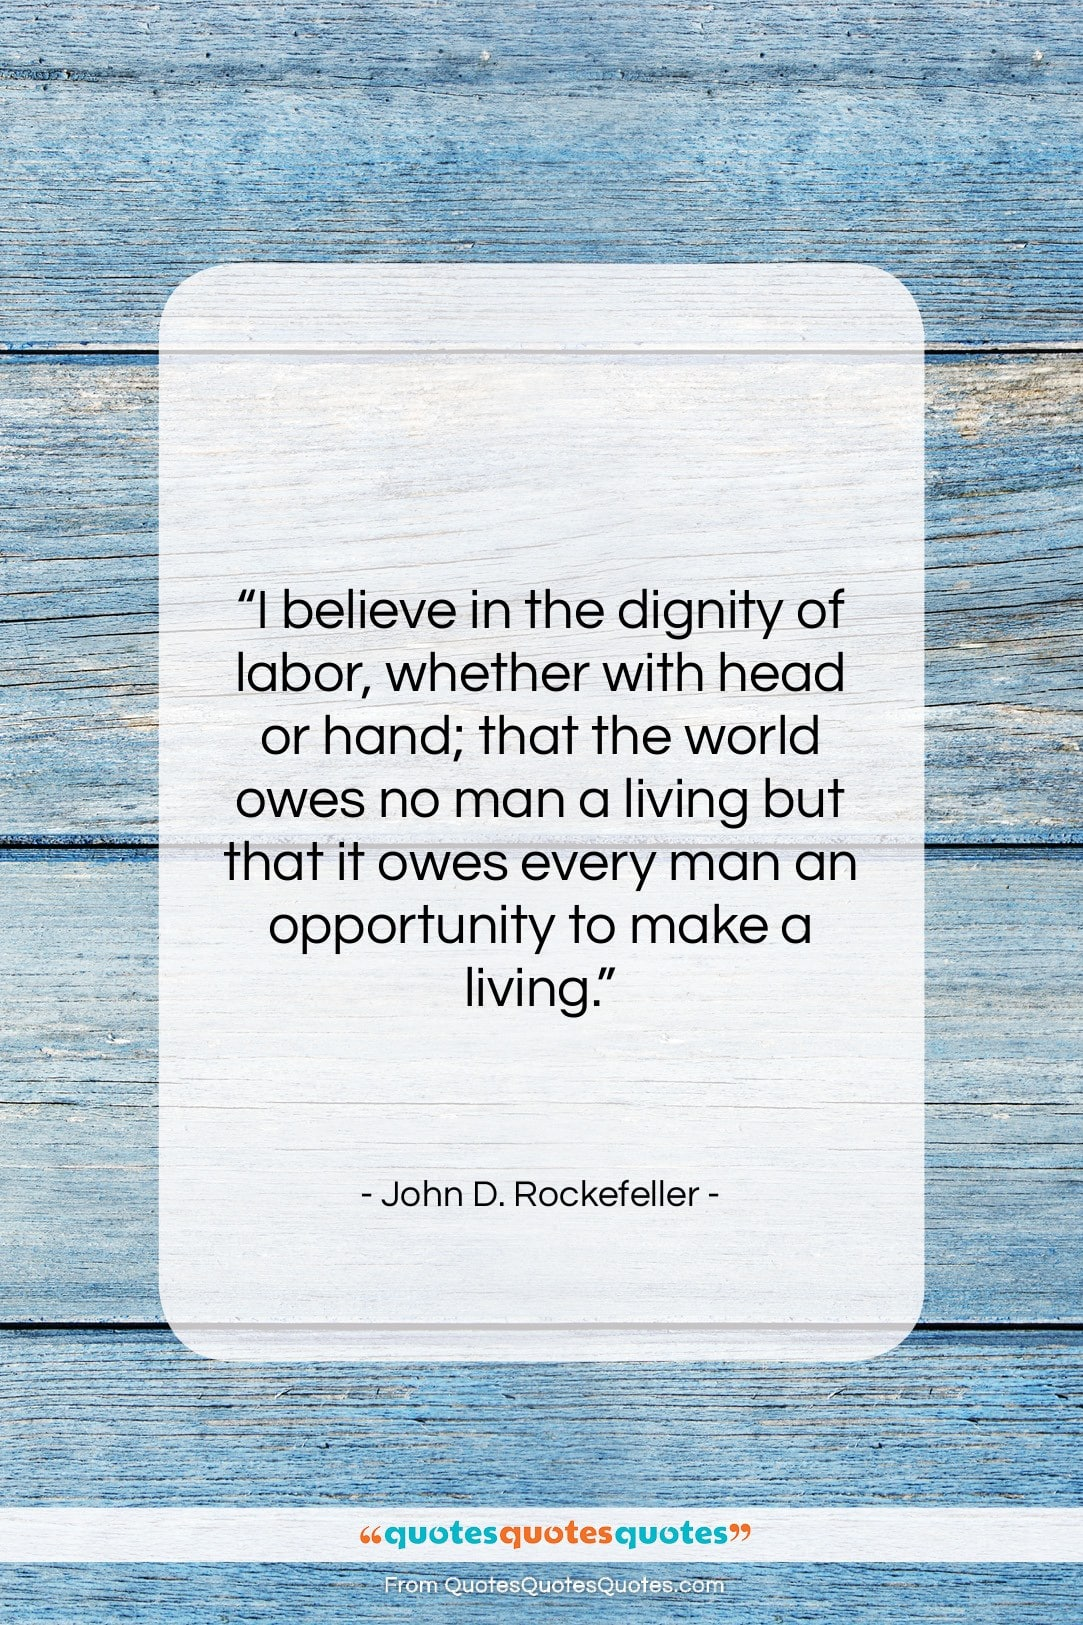 """John D. Rockefeller quote: """"I believe in the dignity of labor,…""""- at QuotesQuotesQuotes.com"""